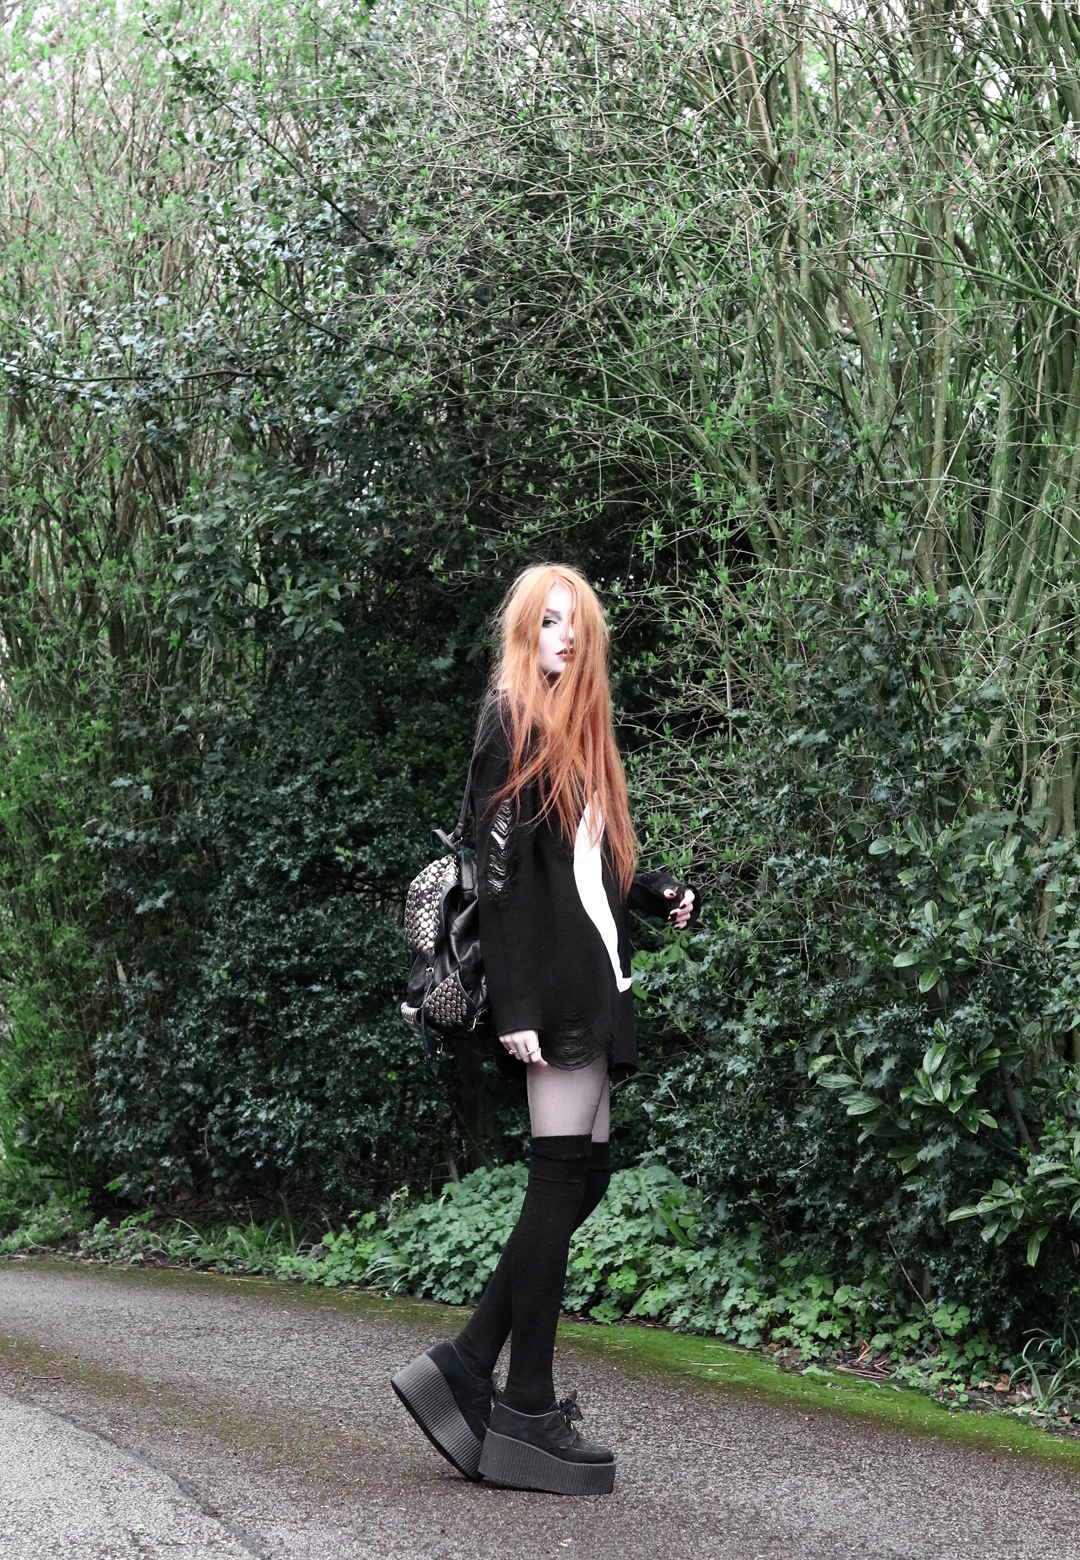 Olivia Emily wears Killstar Luna moon print knit oversized jumper, Asos thigh high socks, Underground triple sole creepers, and Rebecca Minkoff backpack